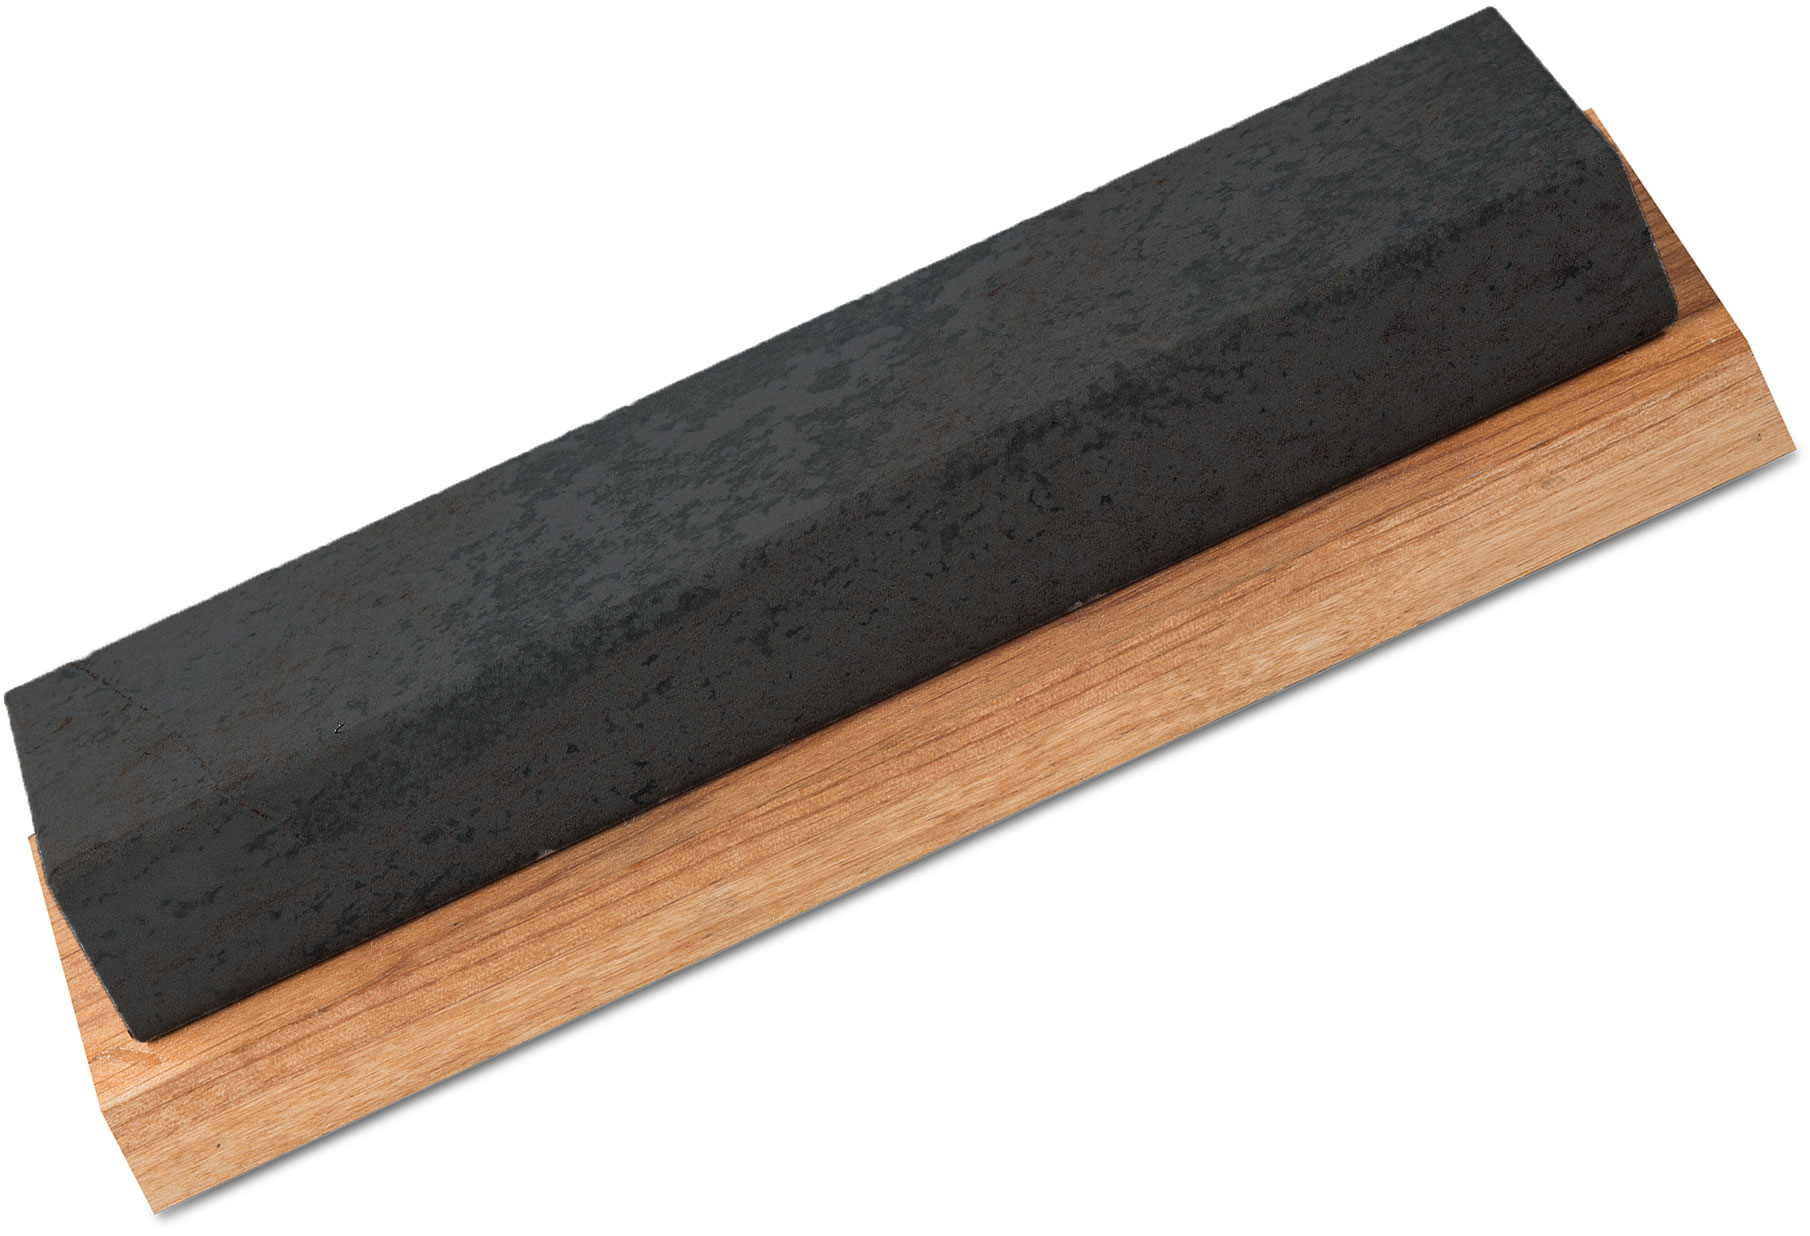 Hall Sharpening Stones 30317 Dunston Black Arkansas 6